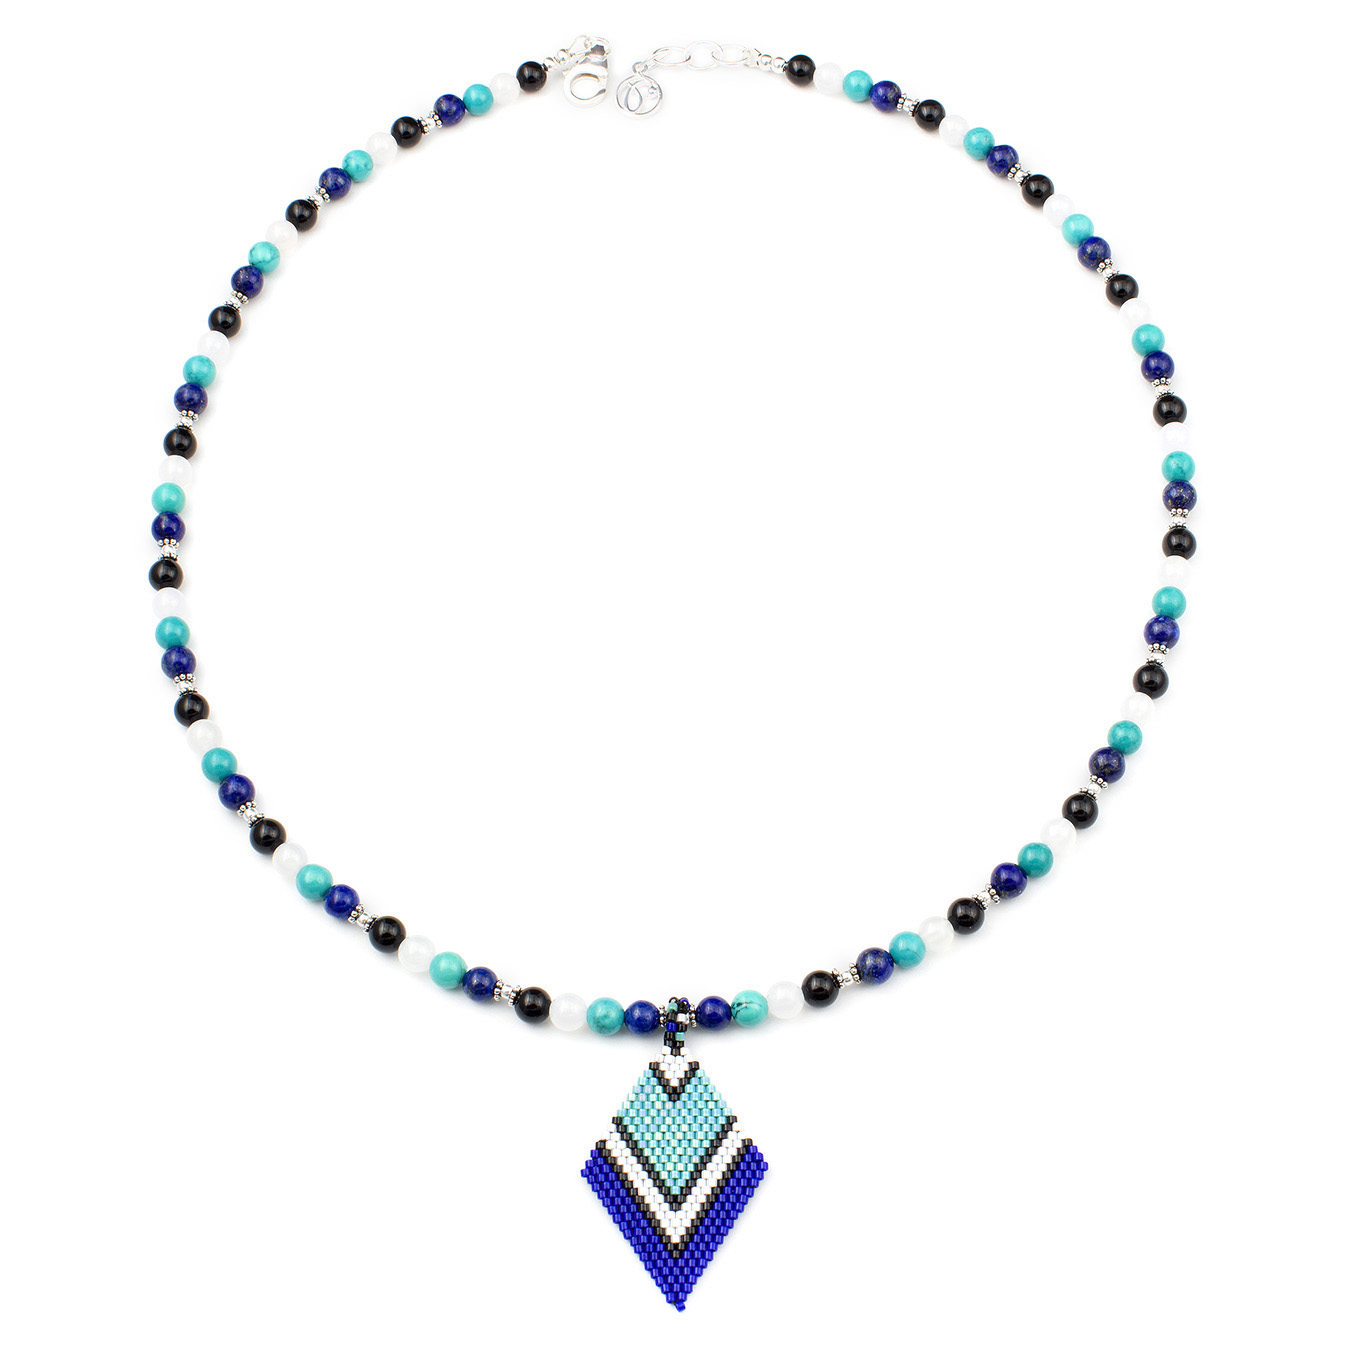 Customized seed bead pendant necklace using multi-color gemstone beads